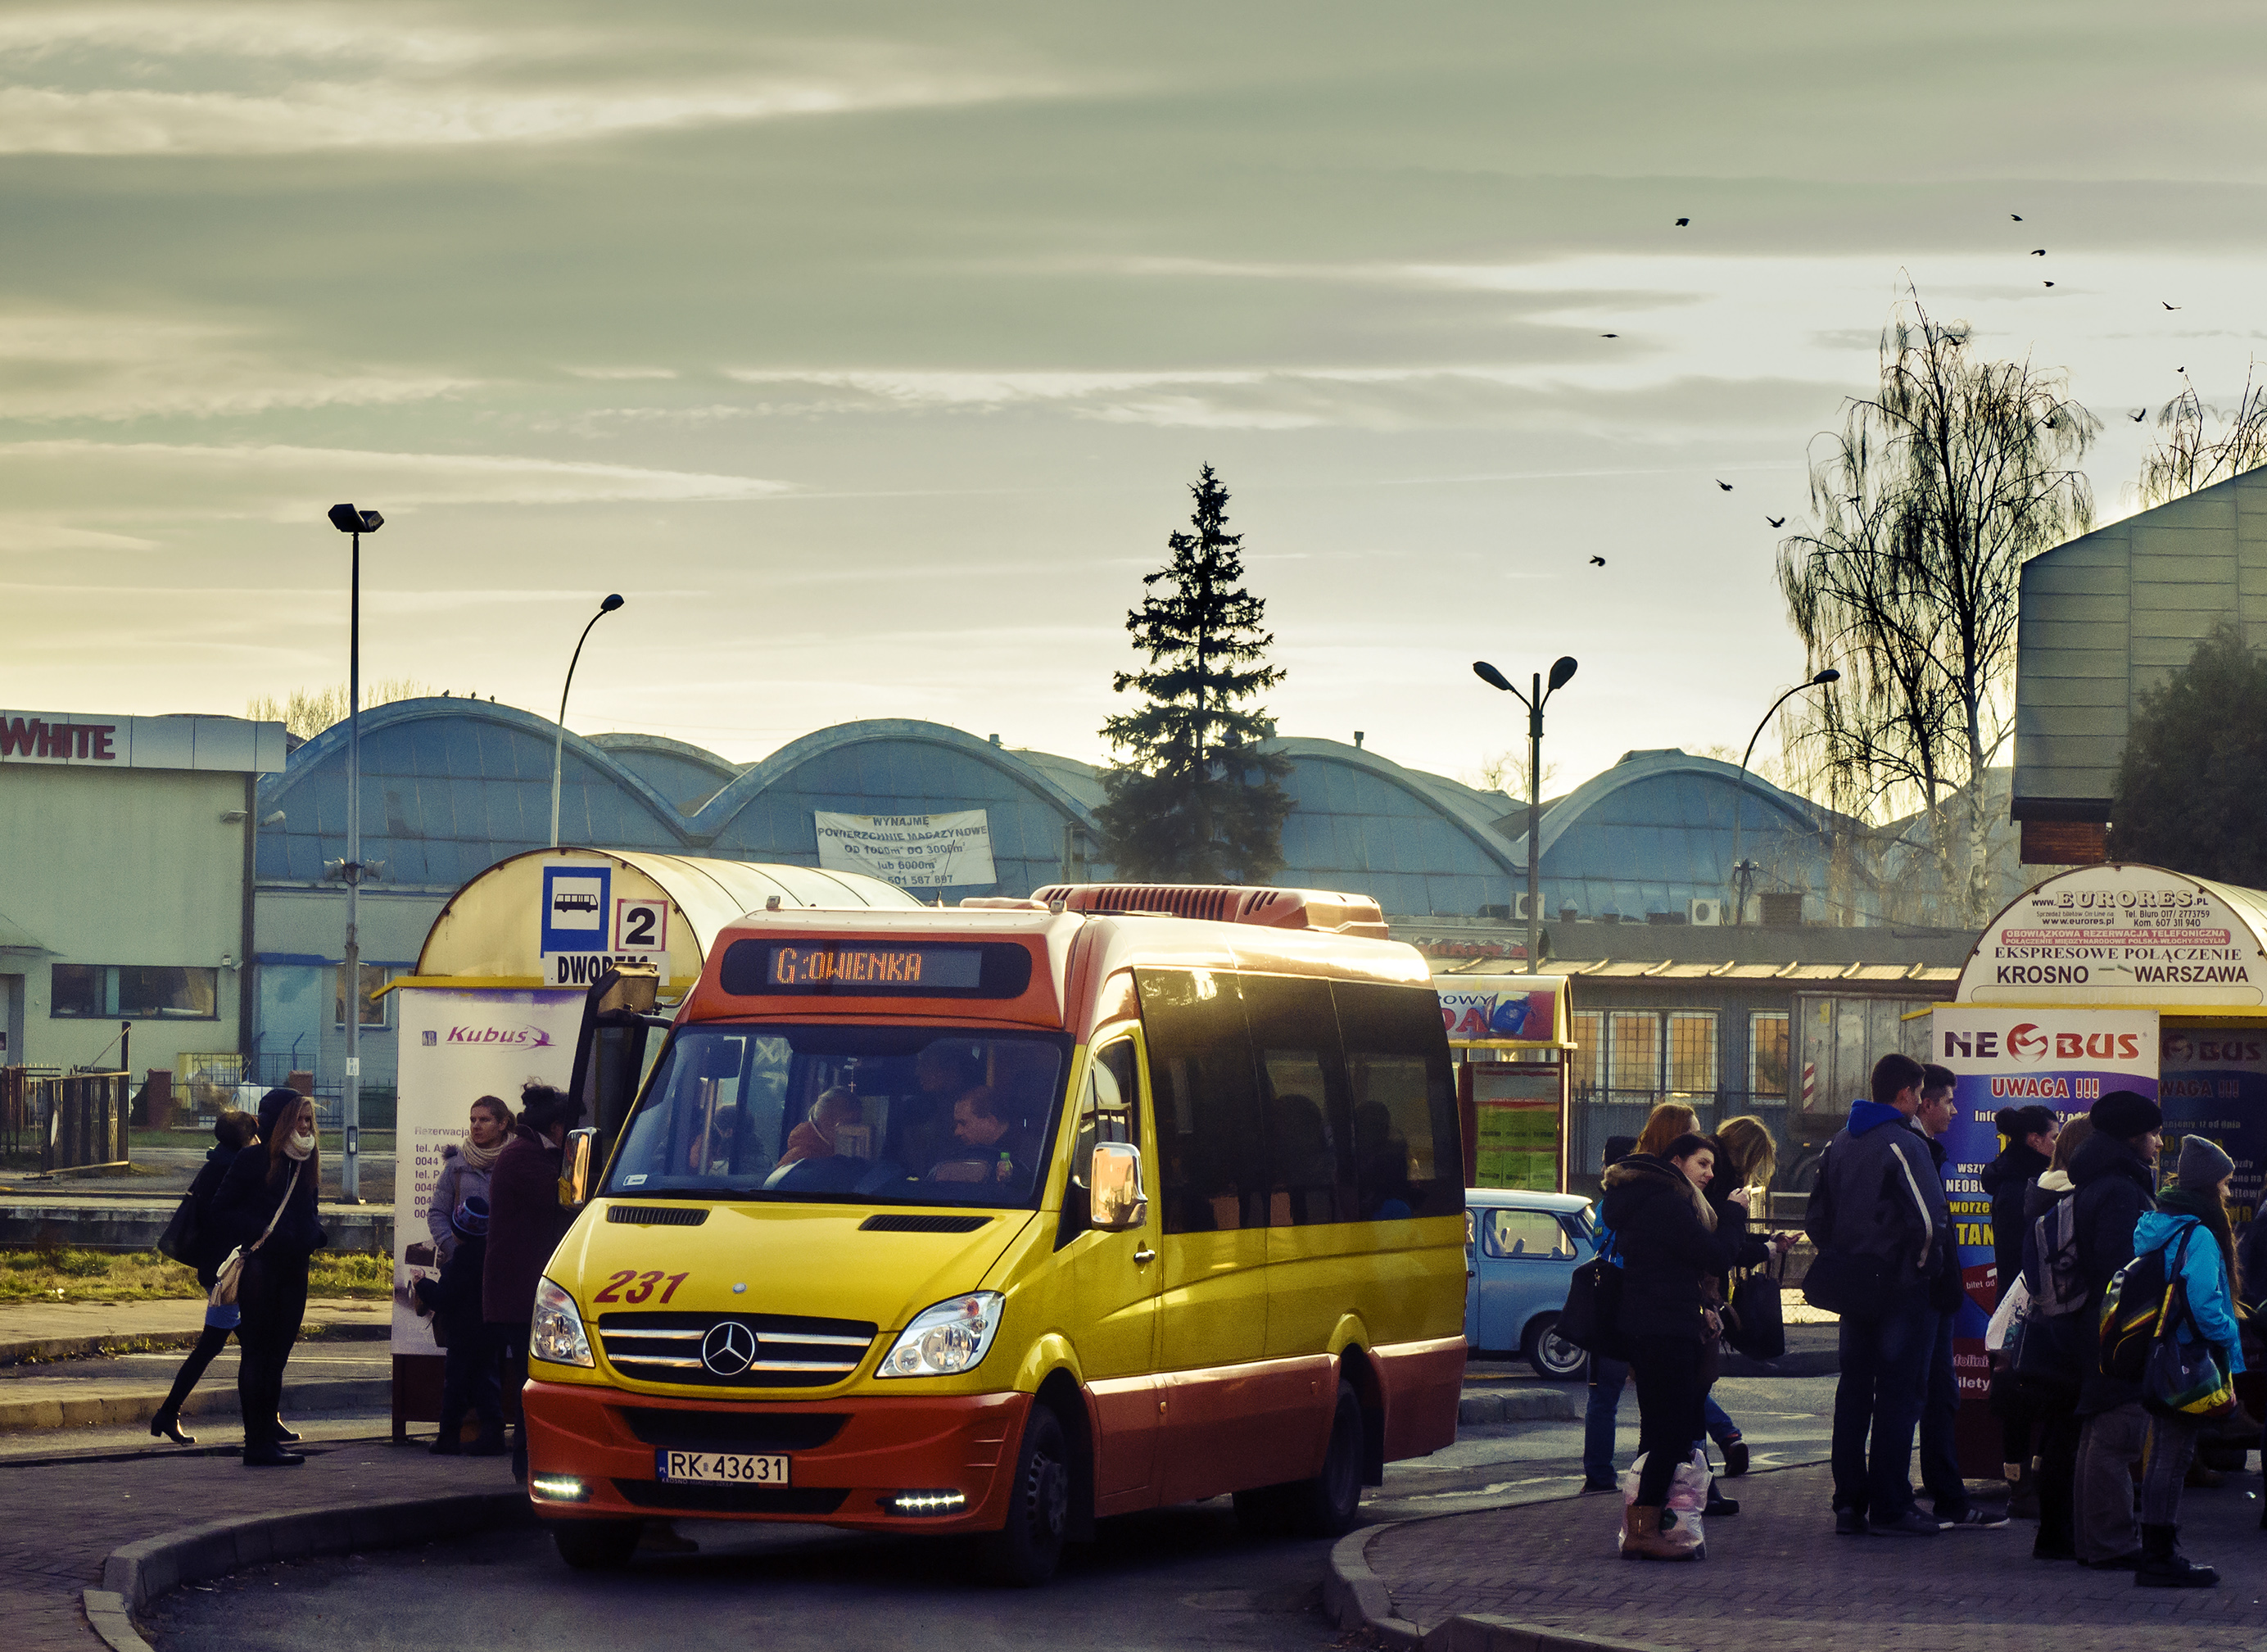 Minibus Autocuby City Line, Station, Transport, Public, Poland, HQ Photo